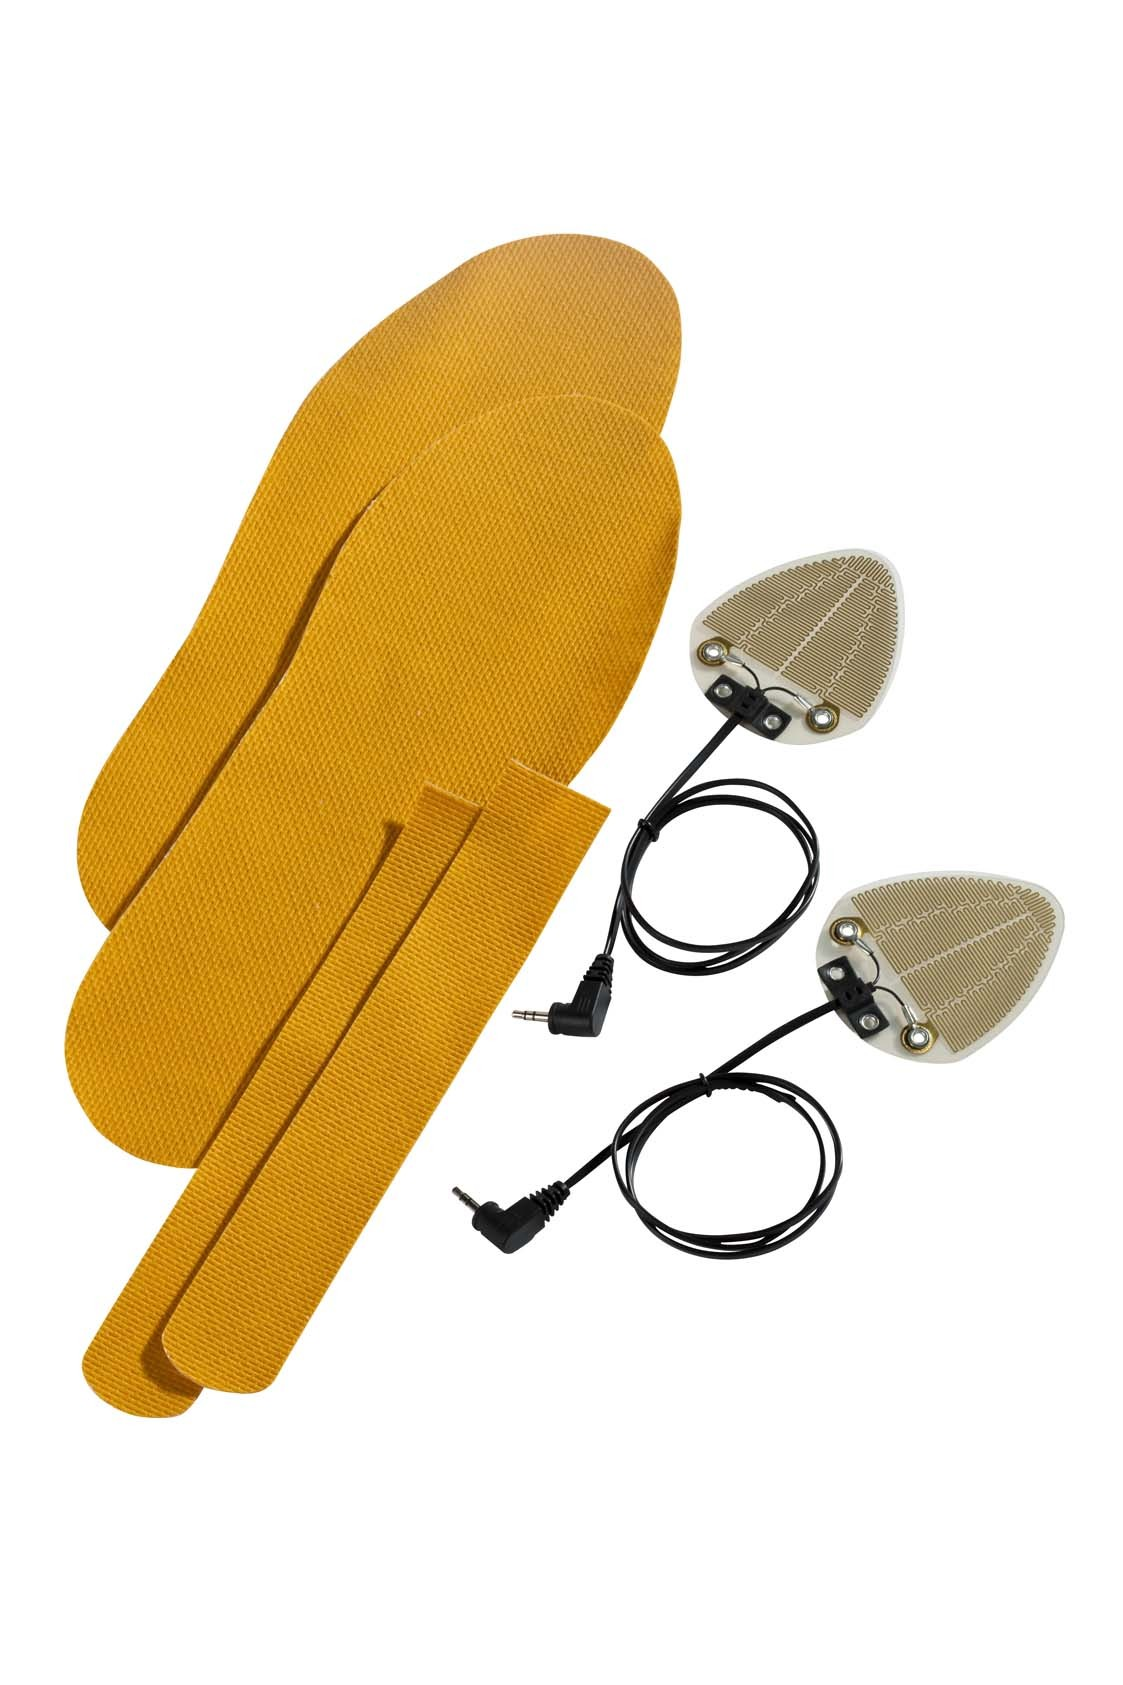 Alpenheat CUSTOM Heating Elements with Cambrelle for TREND and COMFORT